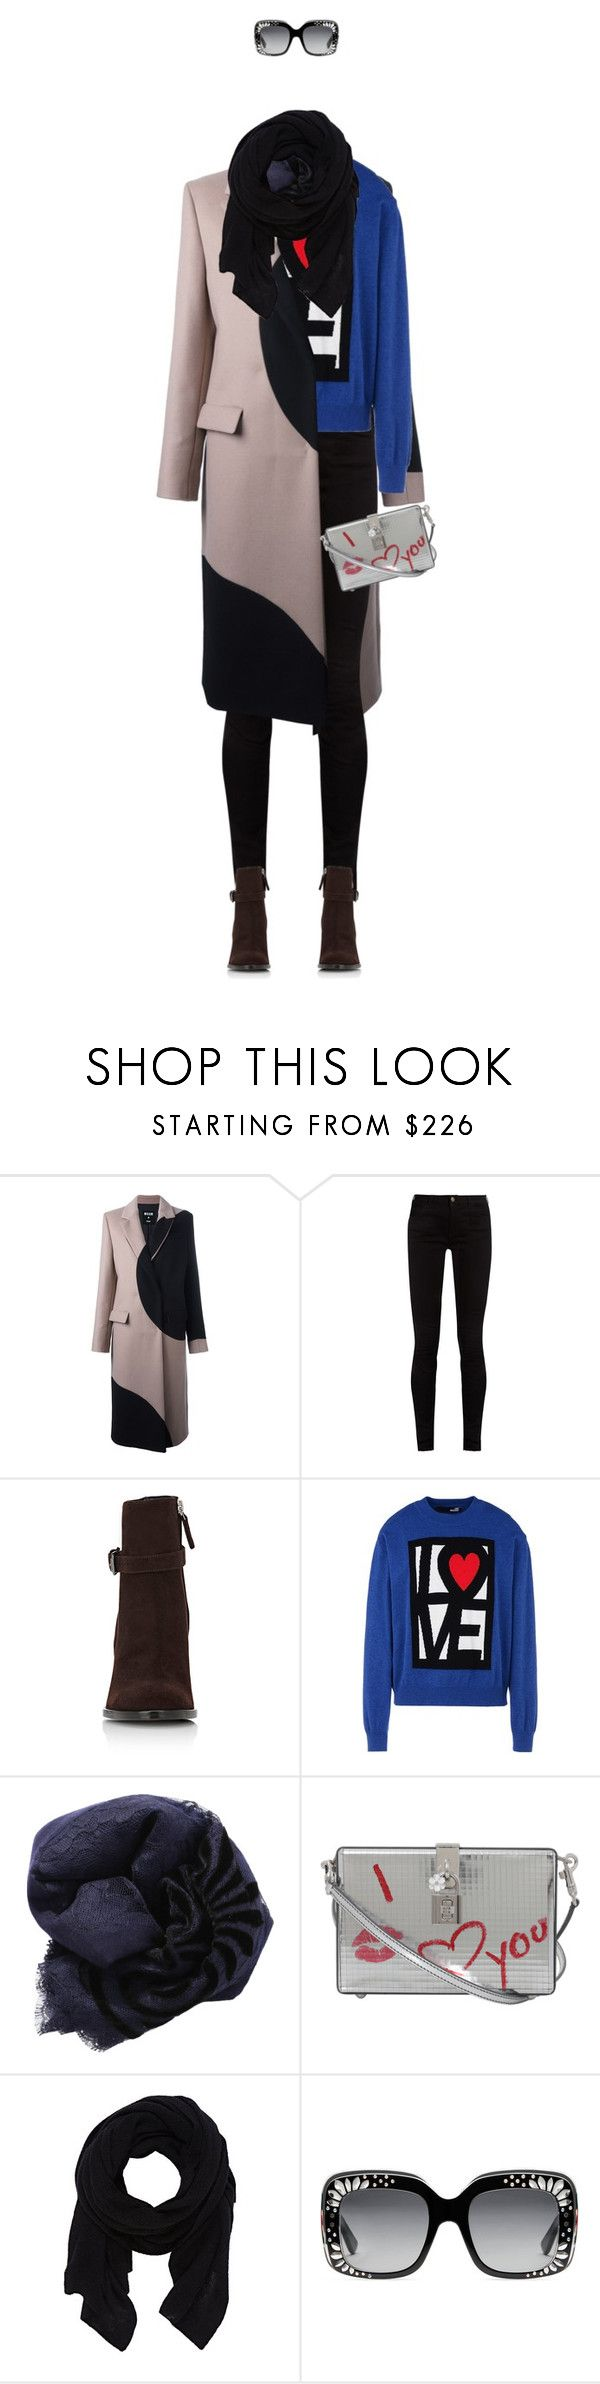 """""""A Winter's Wish"""" by andrea-garzon ❤ liked on Polyvore featuring MSGM, Gucci, Barneys New York, Love Moschino, Janavi, Dolce&Gabbana, GetTheLook, NYFW, korean and Crossgene"""